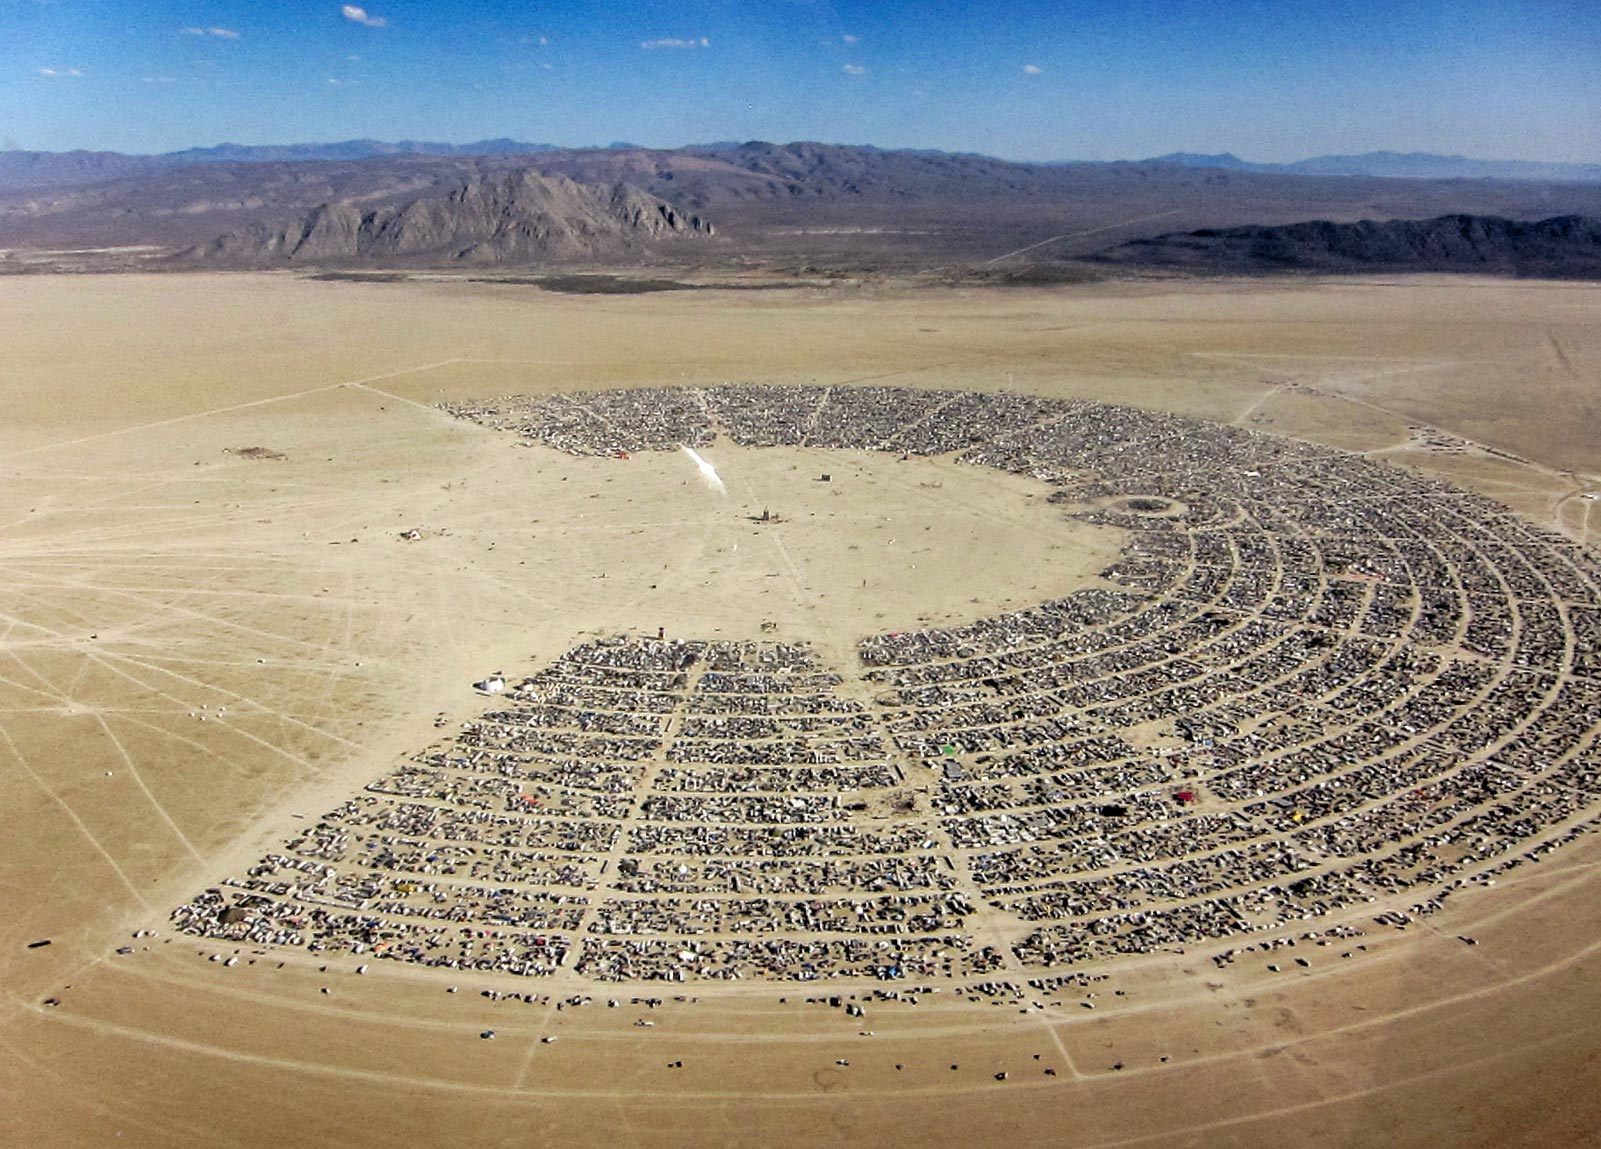 Burning Man 2017: Stunning Photos From The Worlds Biggest